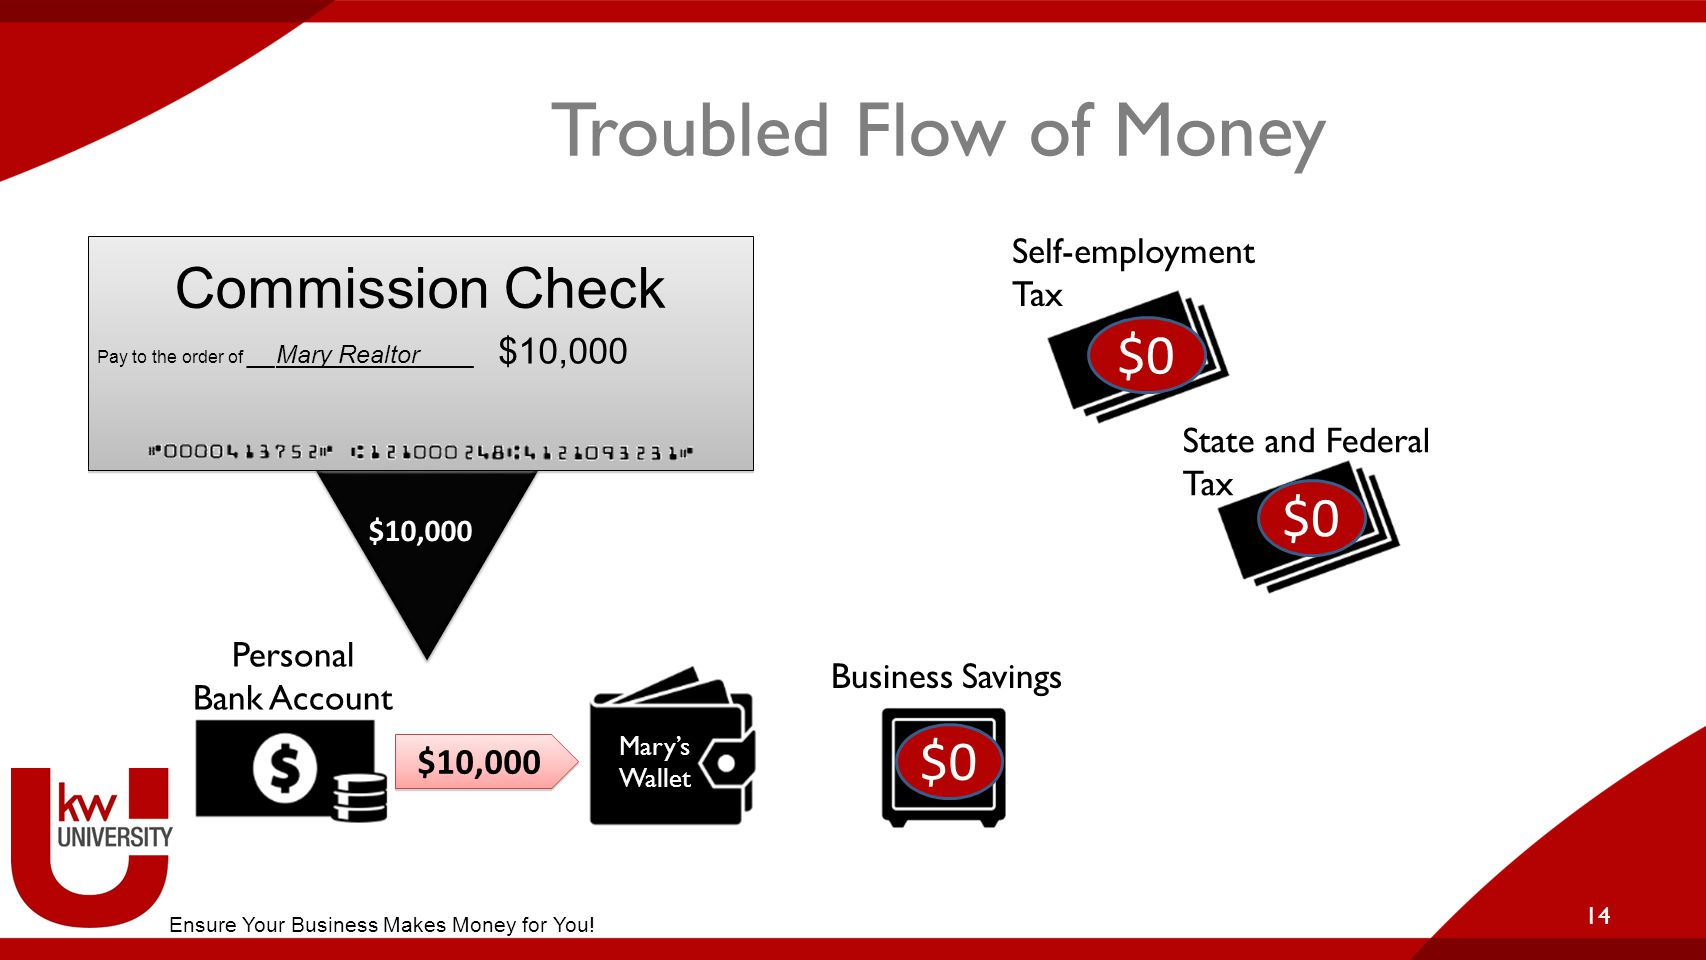 14 Troubled Flow of Money Personal Bank Account Business Savings $10,000 Self-employment Tax State and Federal Tax Mary's Wallet $10,000 Commission Check Pay to the order of __Mary Realtor____ $10,000 $0 Ensure Your Business Makes Money for You!